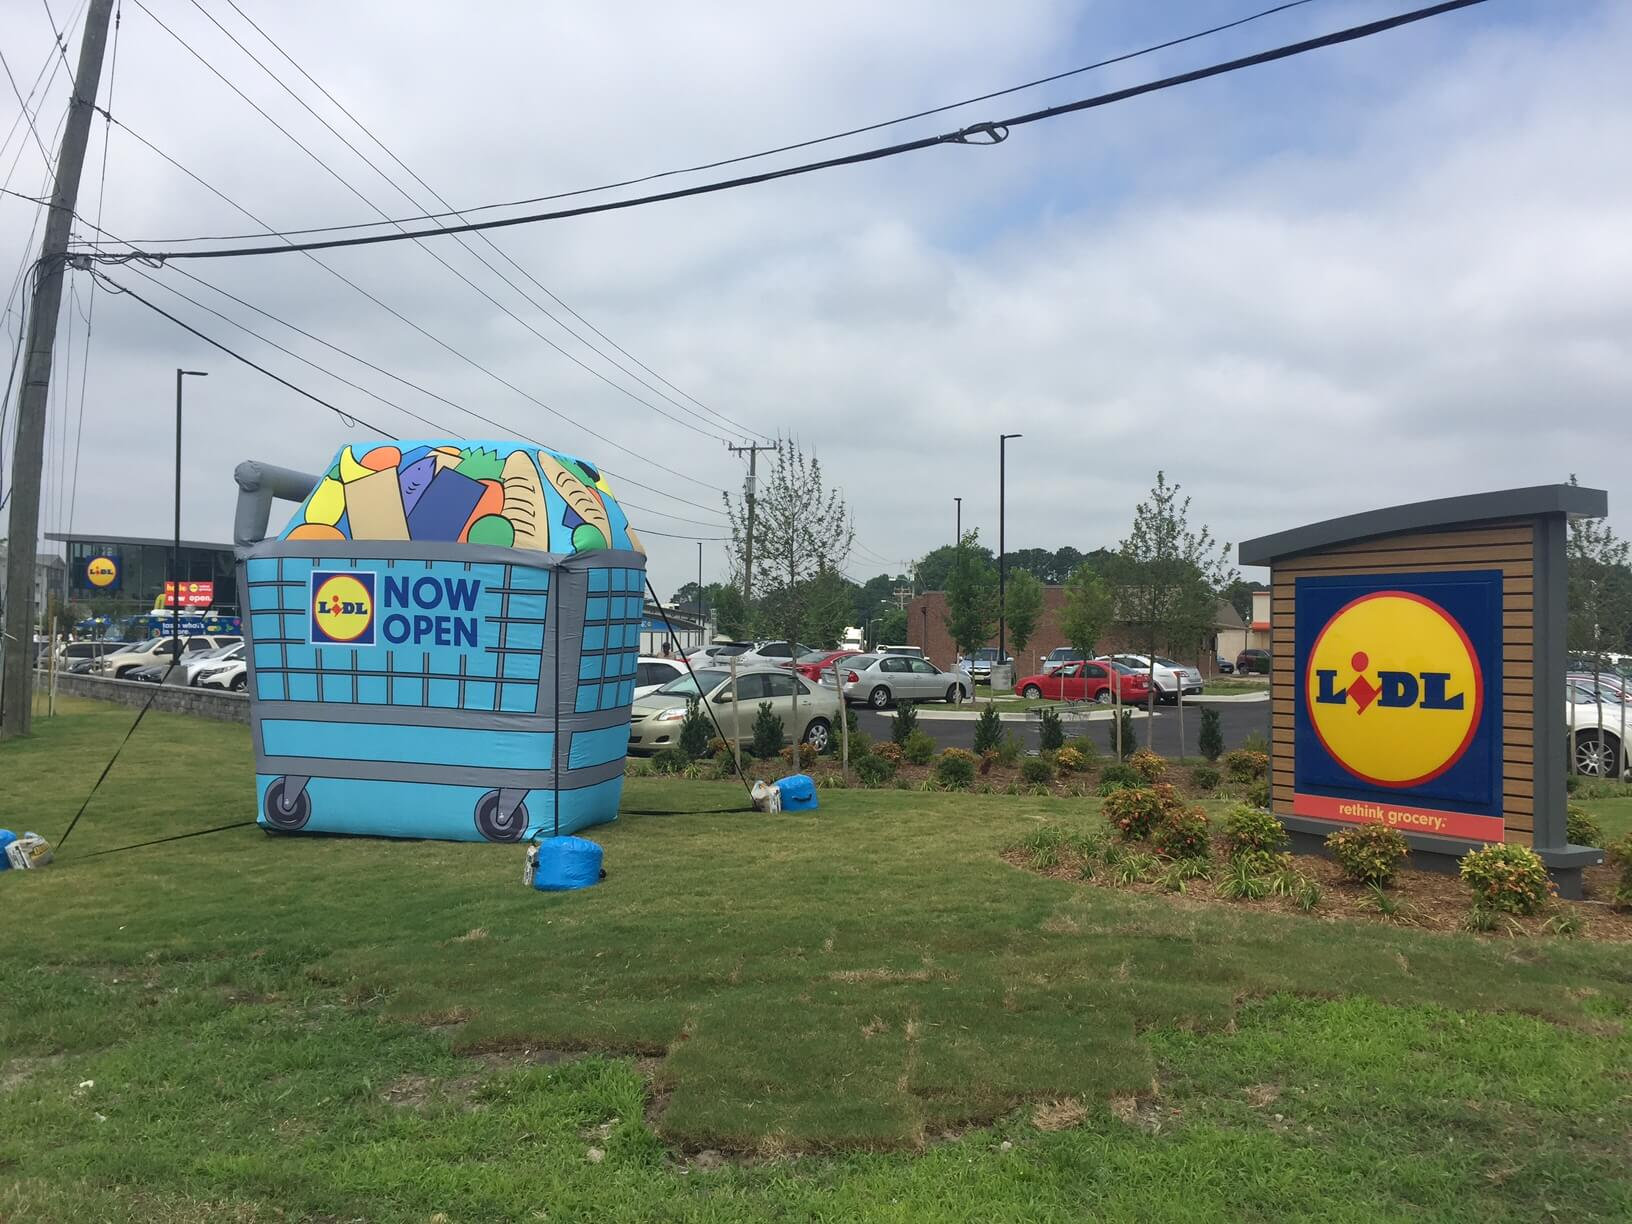 48-lidl-cold-air-grocery-cart-store-opening.jpg